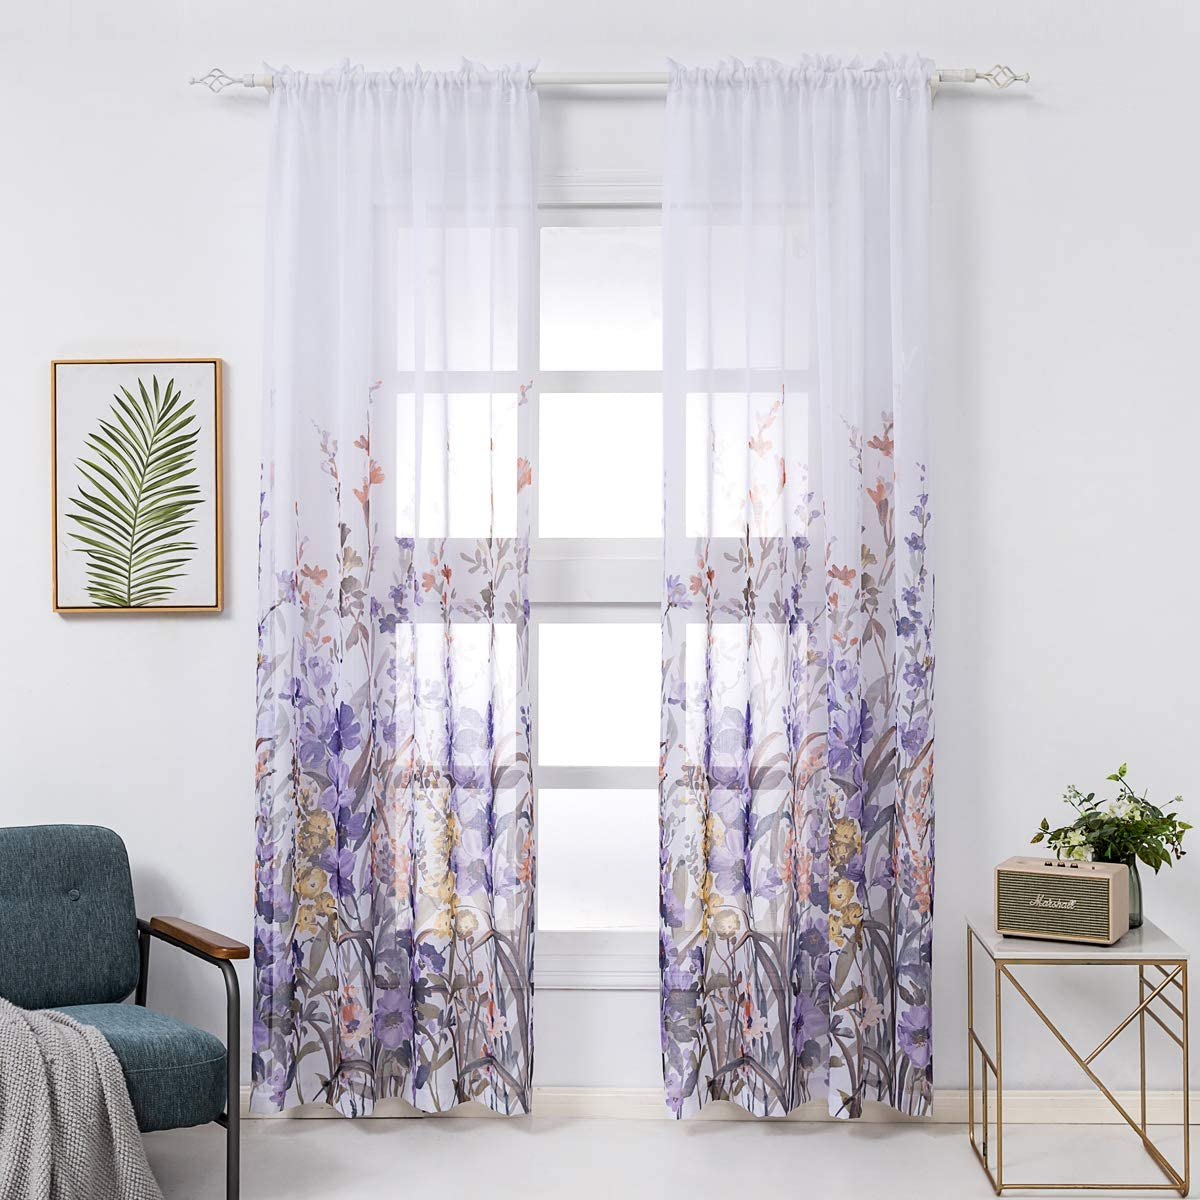 Amazon Com Kotile Floral Sheer Curtains 84 Inch Length Purple Flowers Blossom Print Curtain 2 Panels For Bedroom Living Dining Room 52 X 84 Inches Pair Home Kitchen